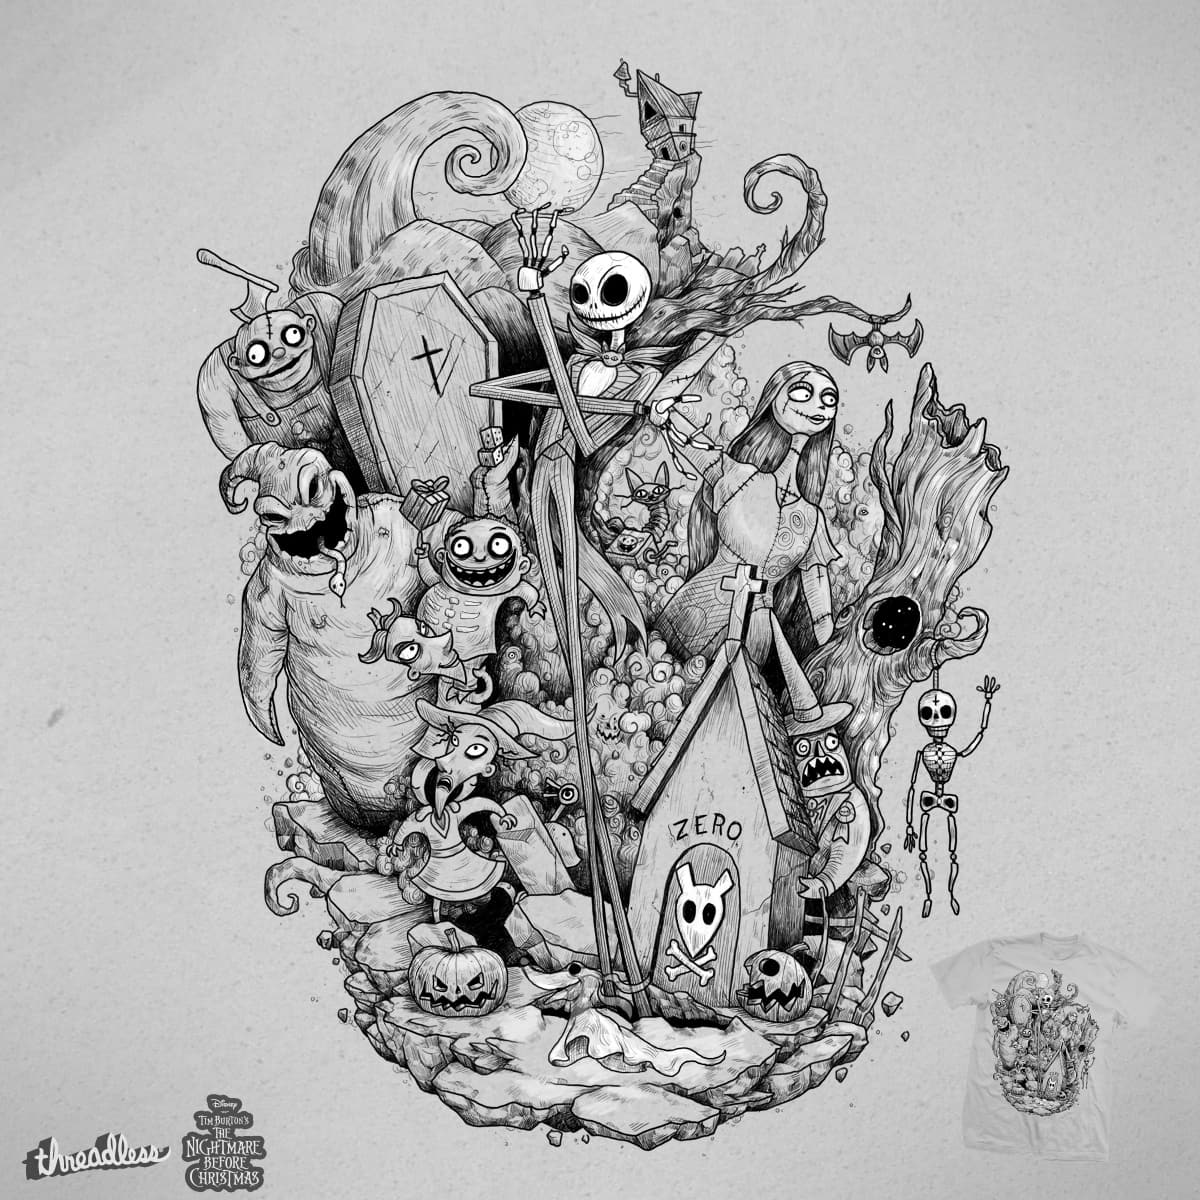 Score Nightmare in black and white by Demented on Threadless